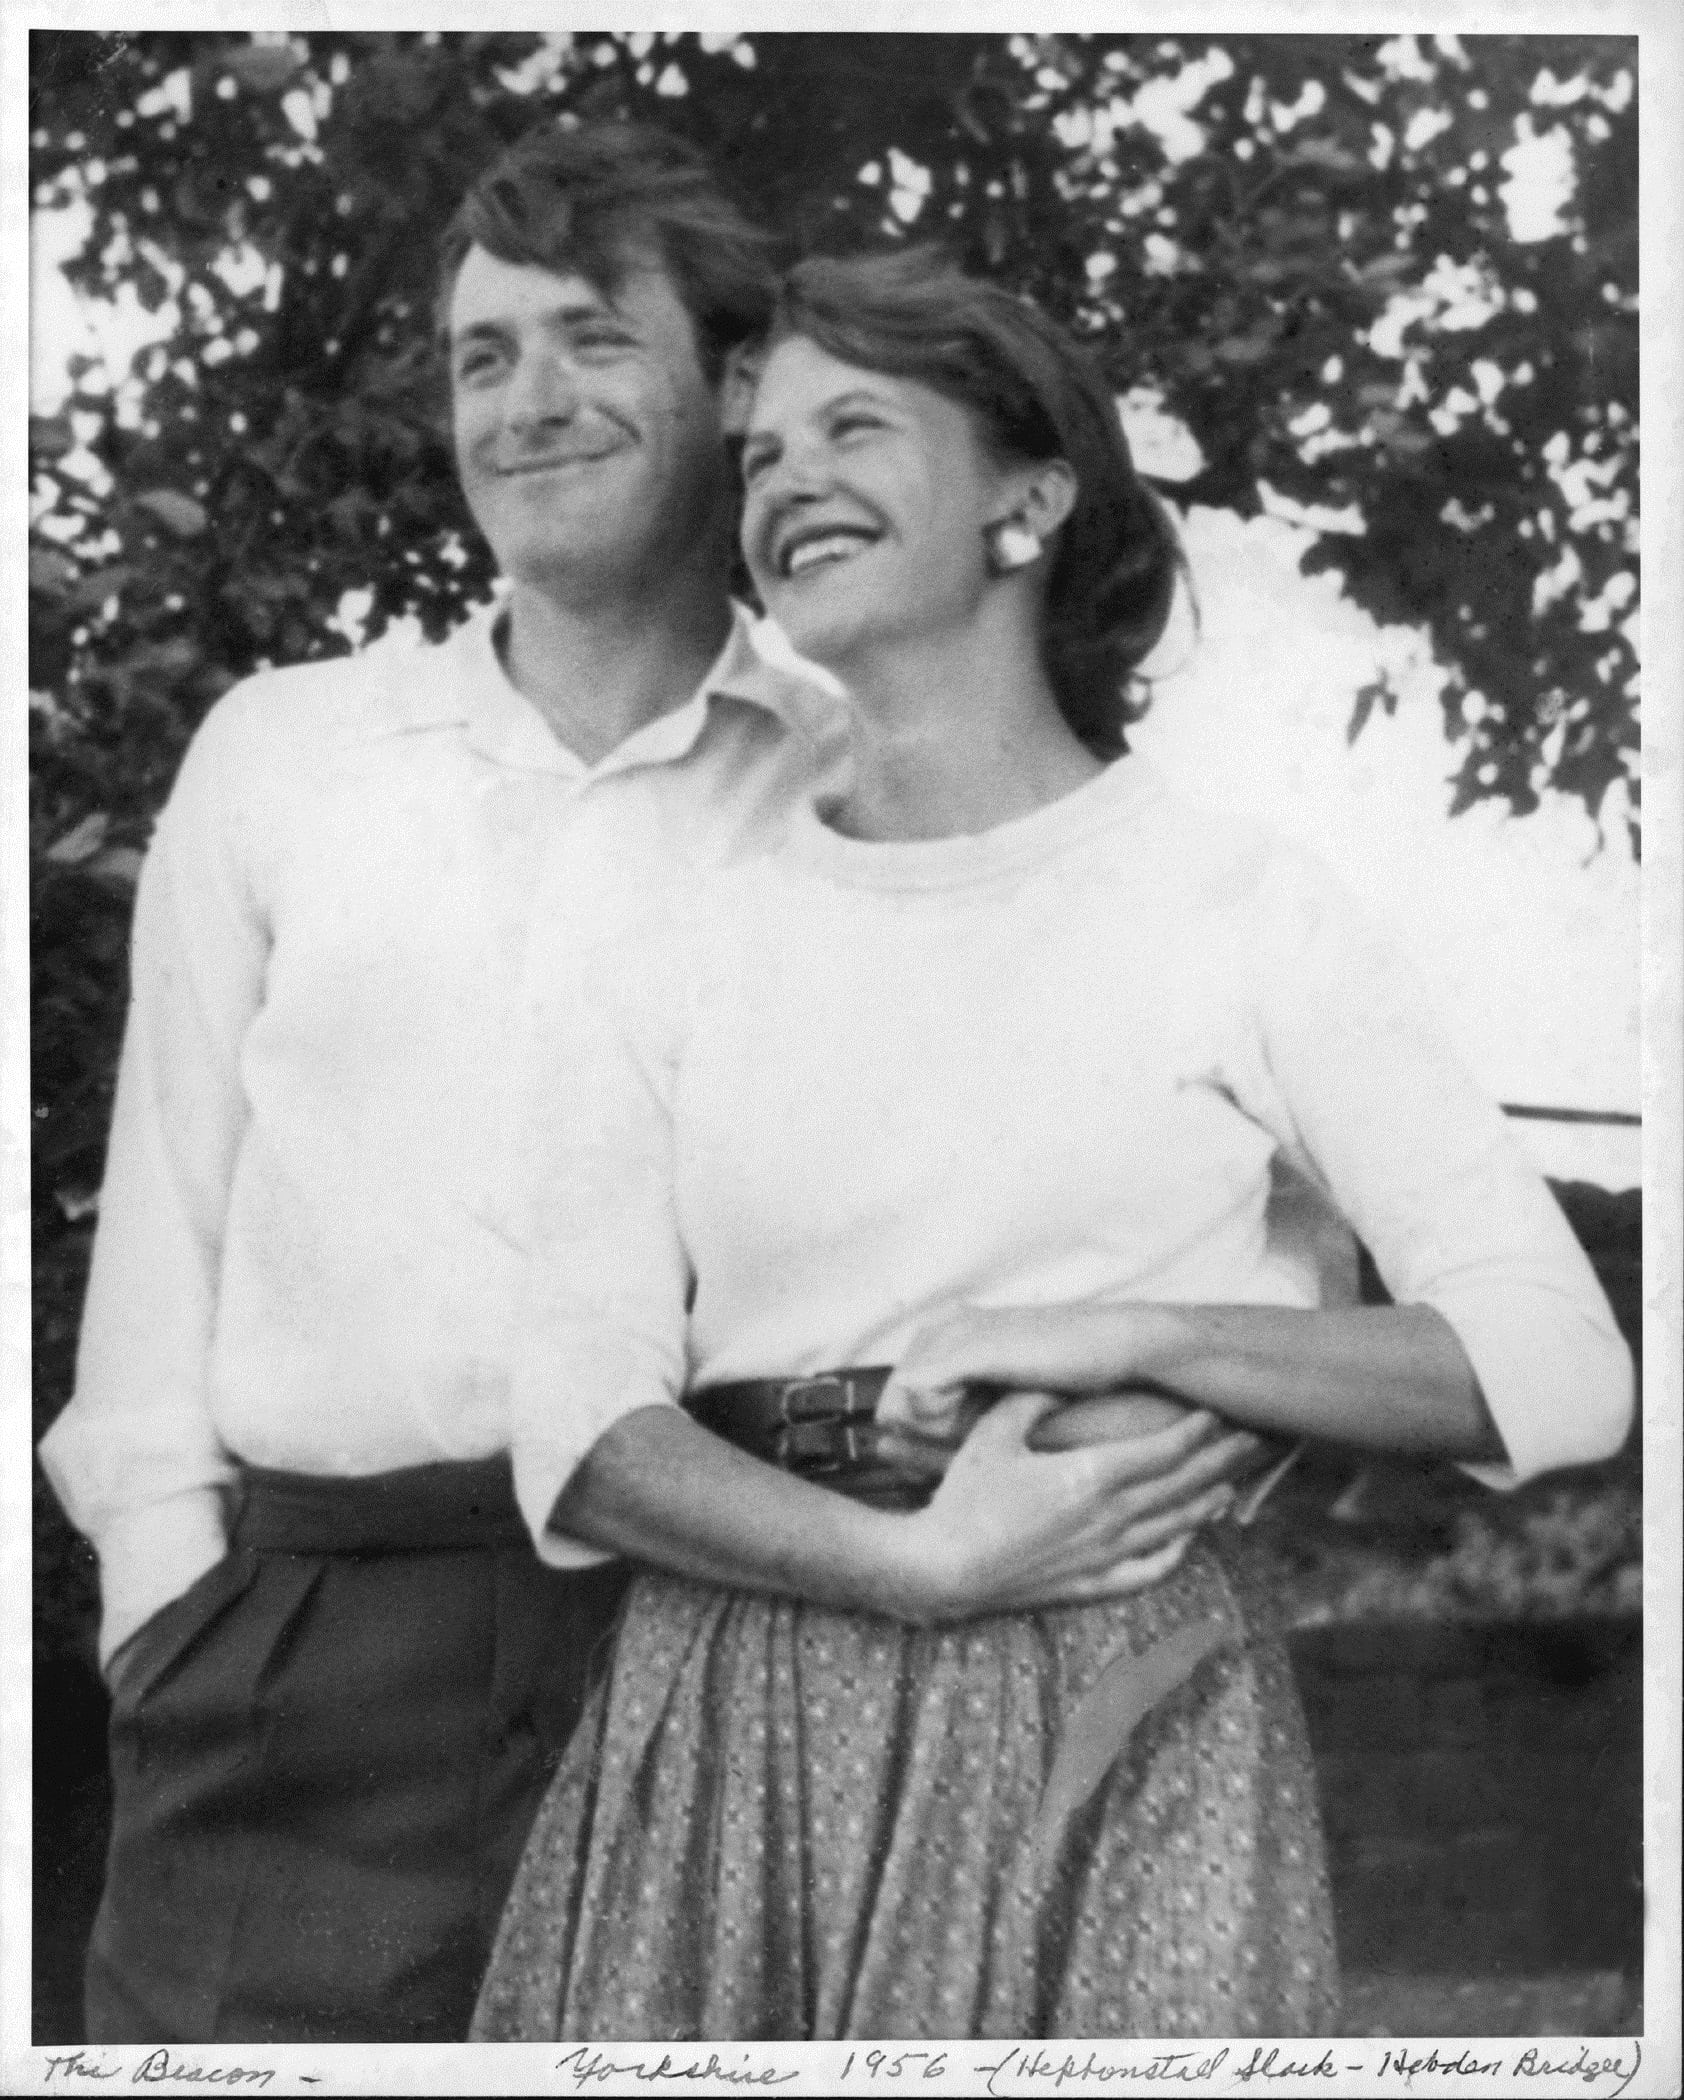 Ted Hughes and Sylvia Plath in Yorkshire, UK, 1956 Photograph: Harry Ogden/Courtesy Mortimer Rare Book Collection, Smith College, Northampton, Massachusetts